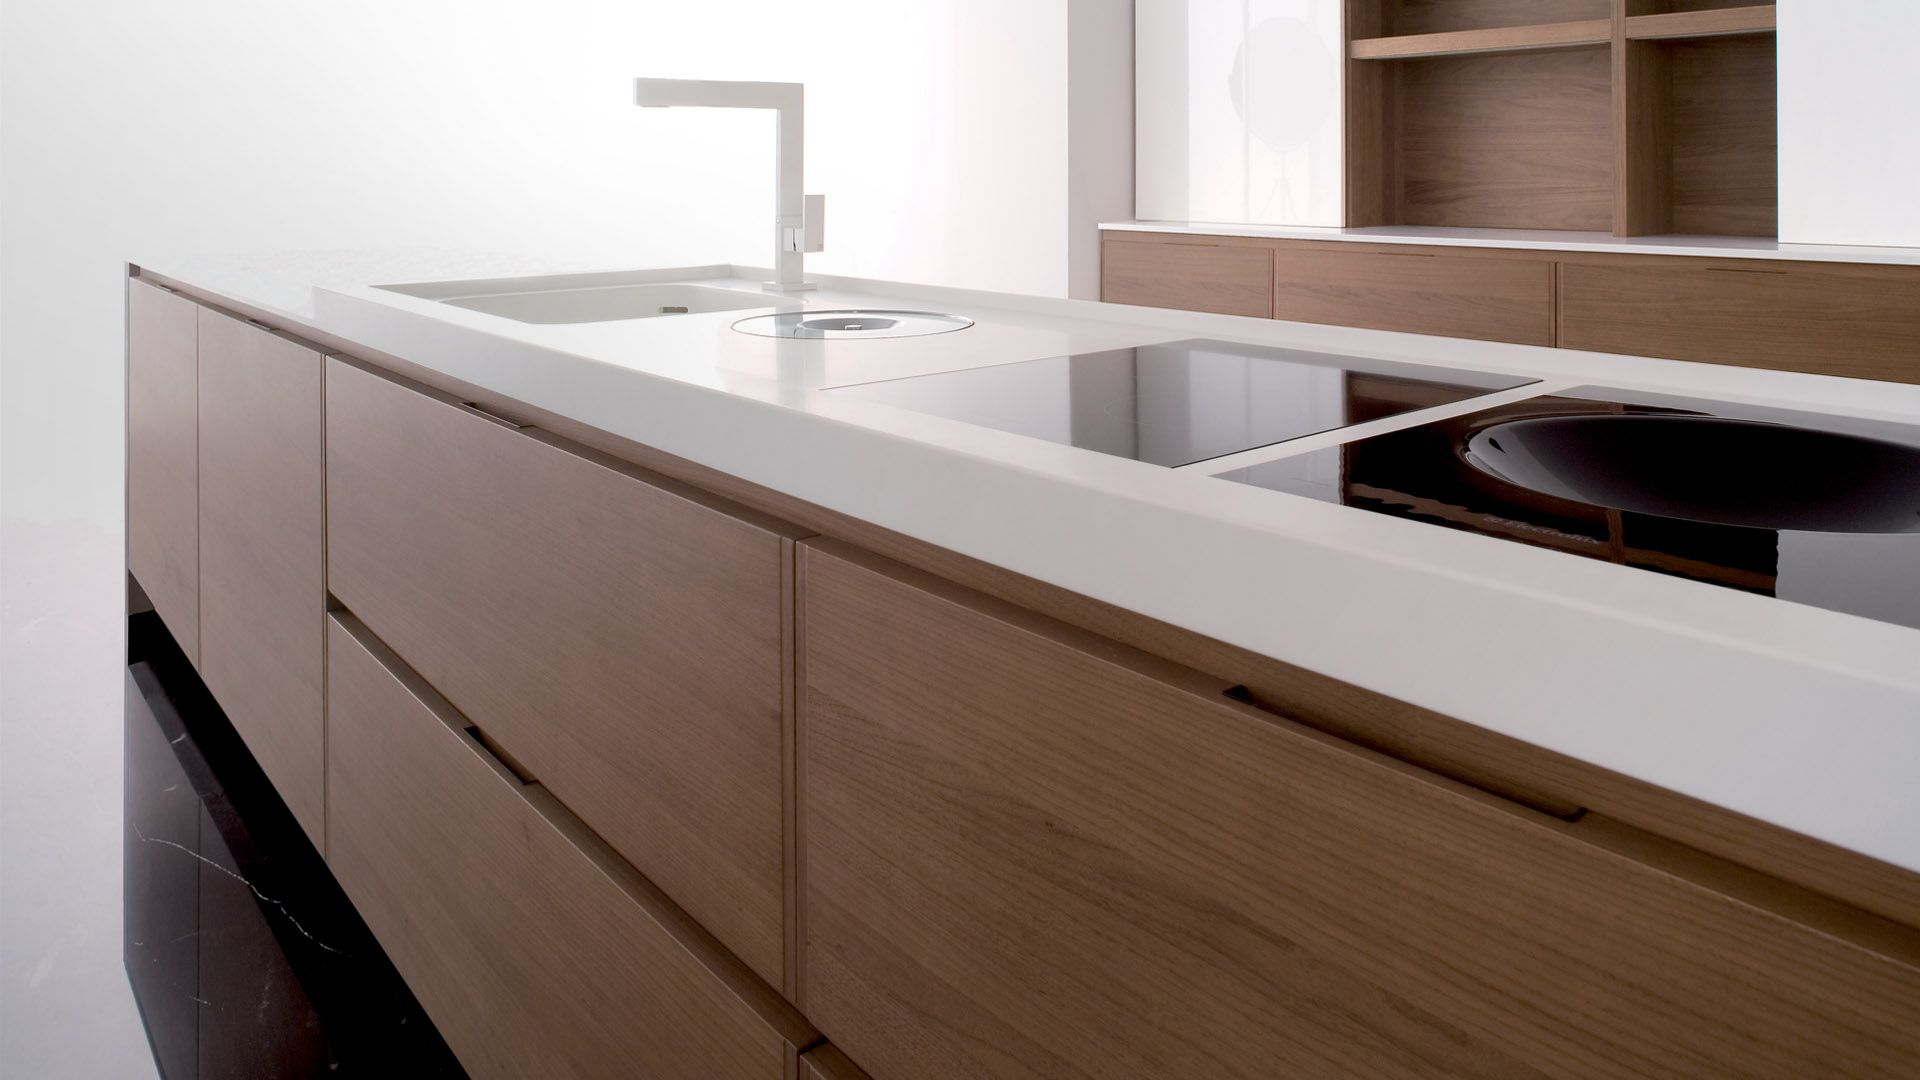 Fancy luxurious kitchen design with glacier white corian for Cabinet and countertop design